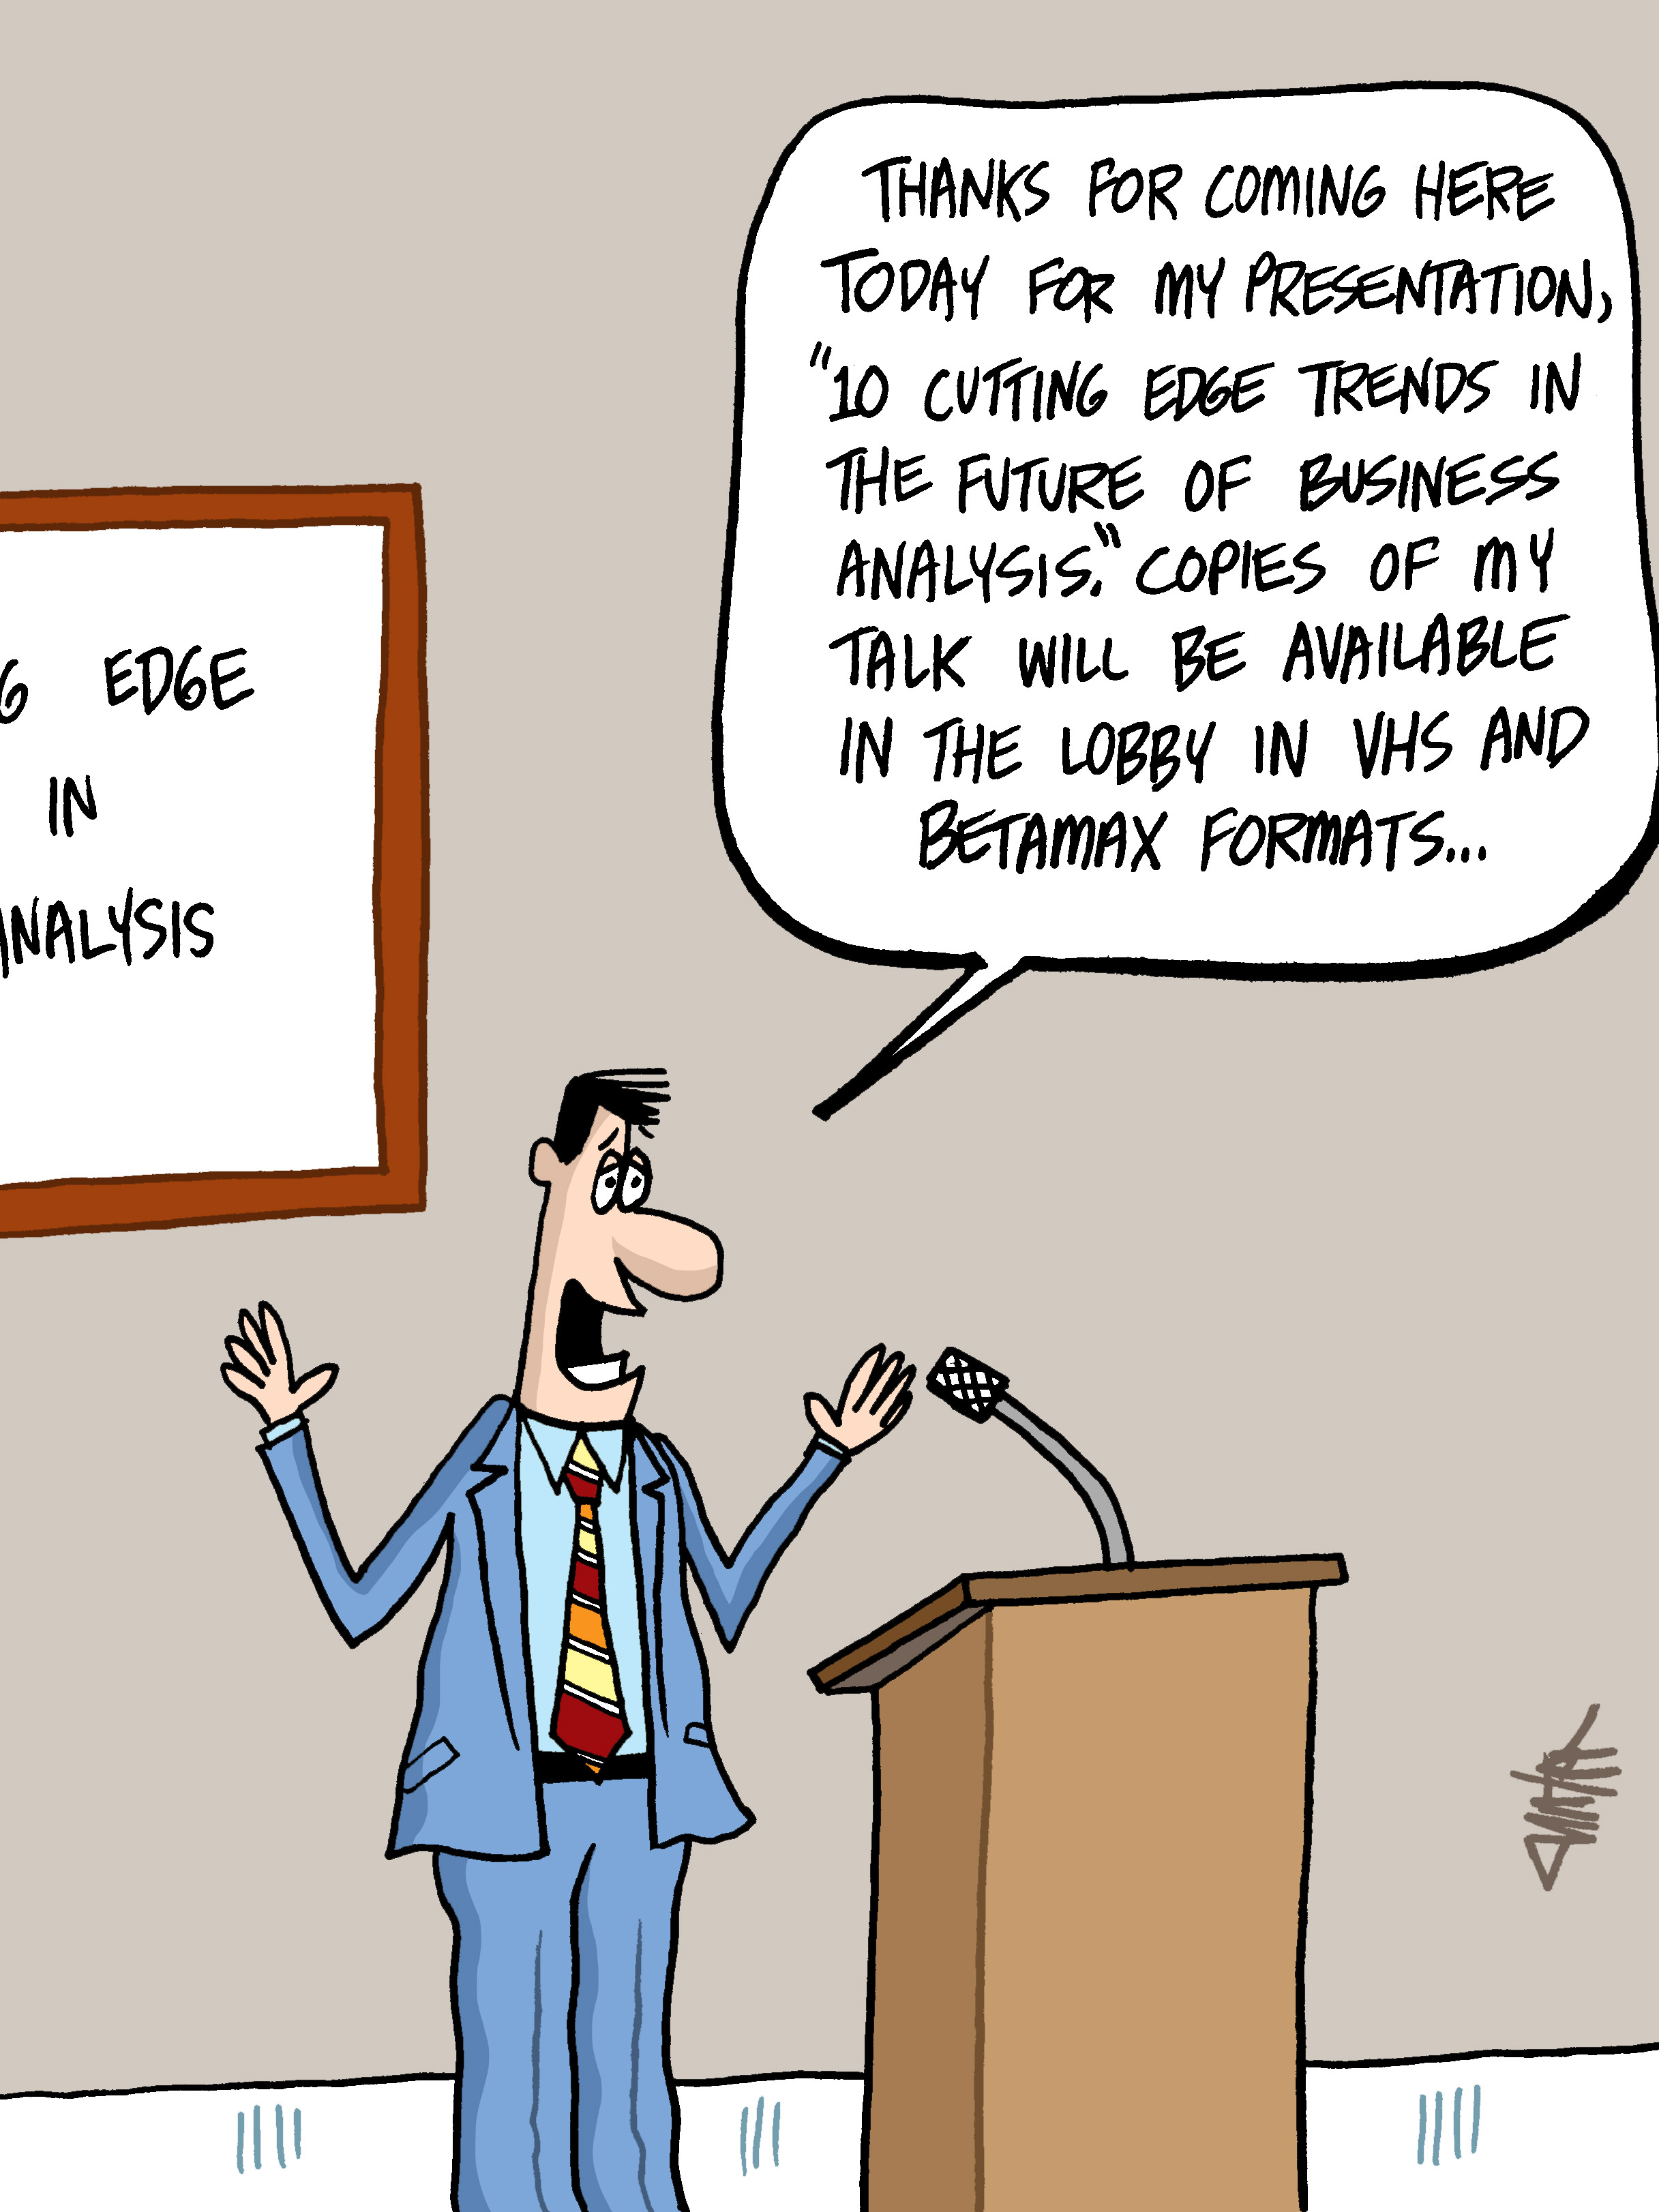 Humor - Cartoon: 10 Cutting Edge Trends in Business Analysis